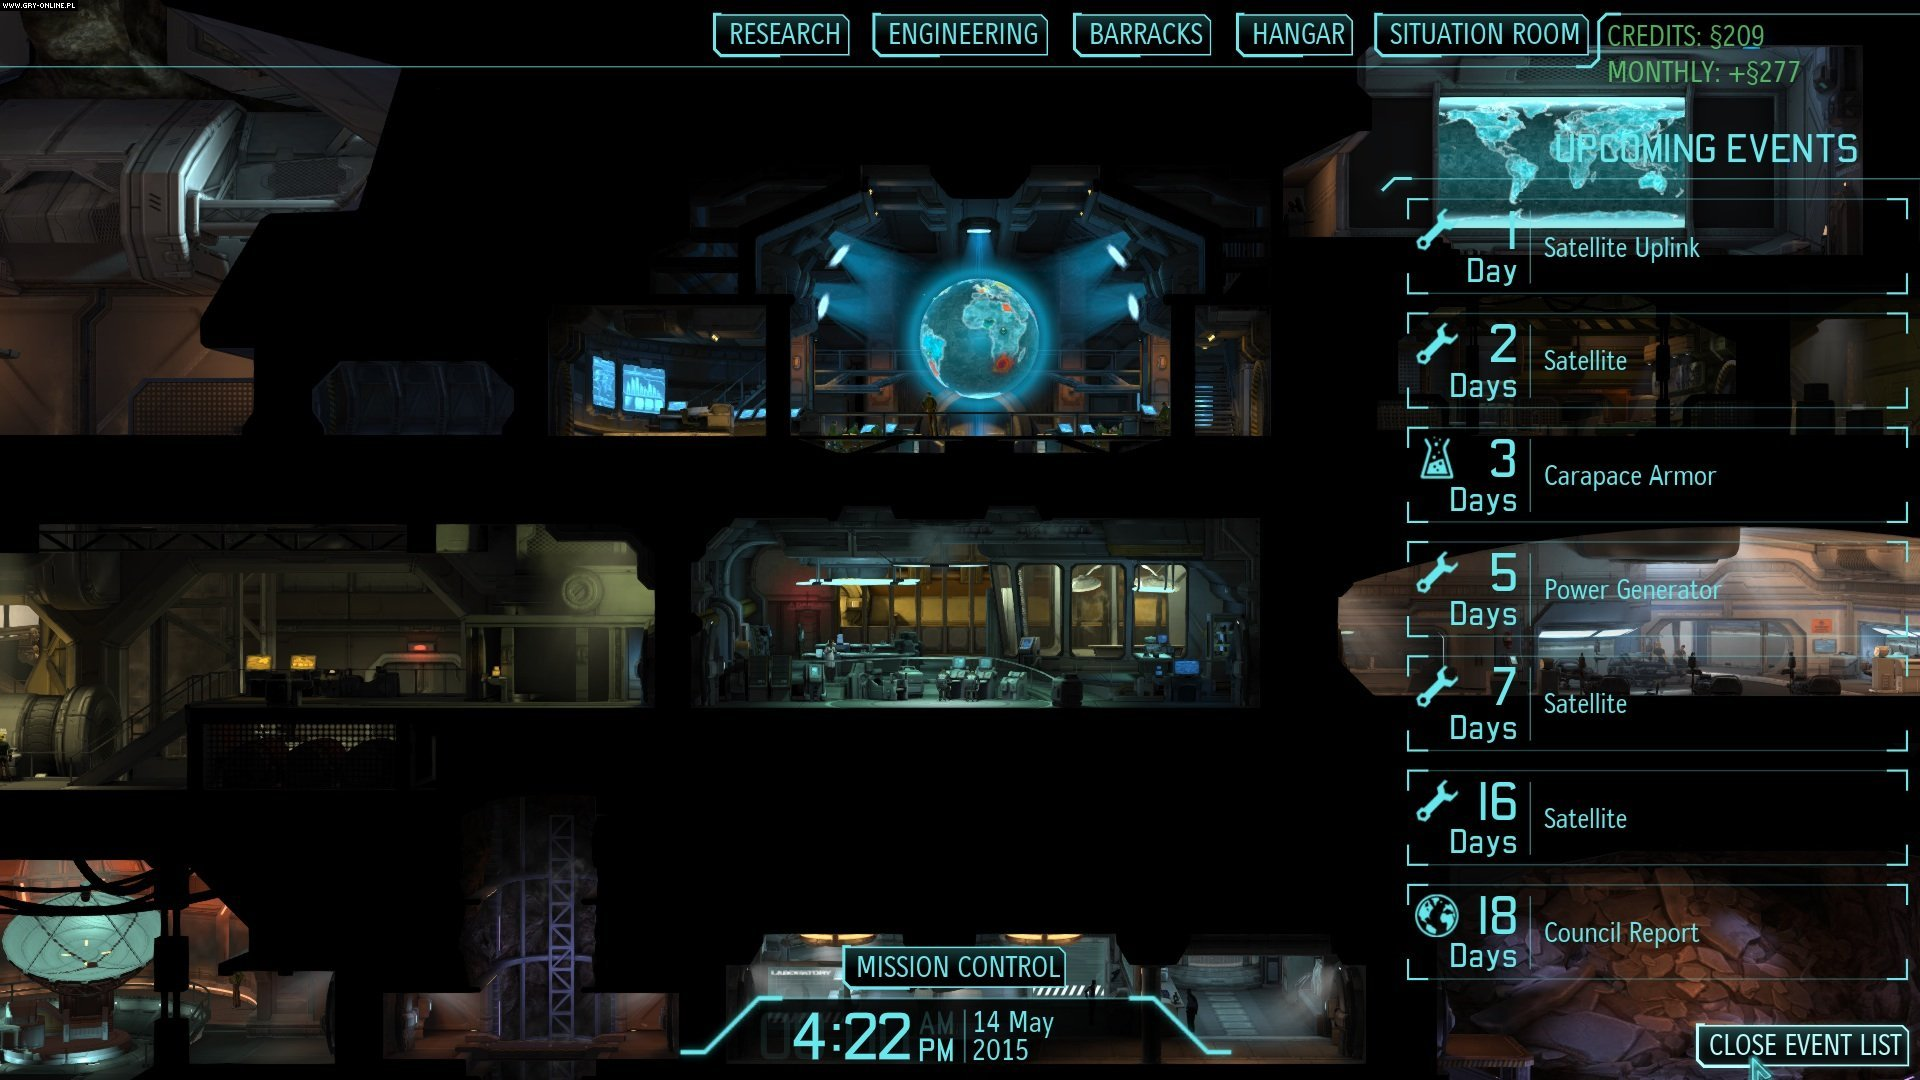 XCOM: Enemy Unknown PC, X360, PS3 Gry Screen 117/179, Firaxis Games, 2K Games